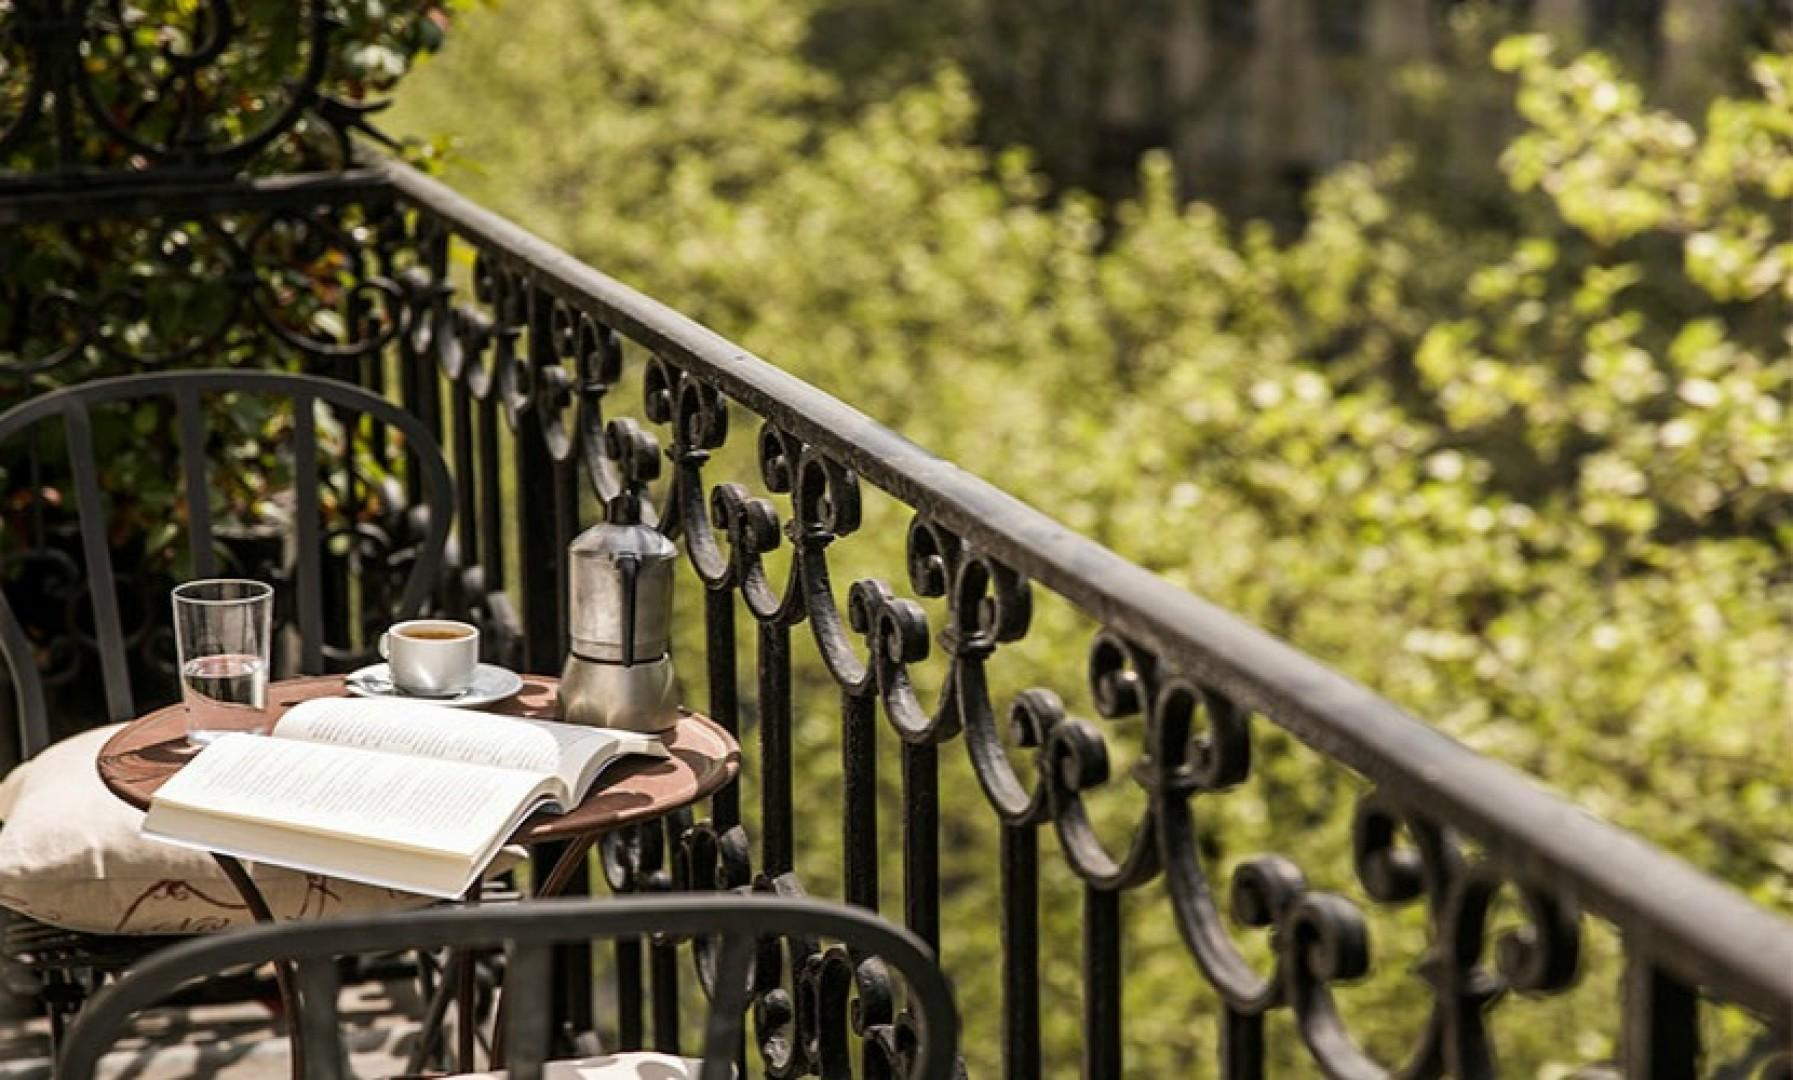 Relax on the balcony with a book and freshly brewed coffee.